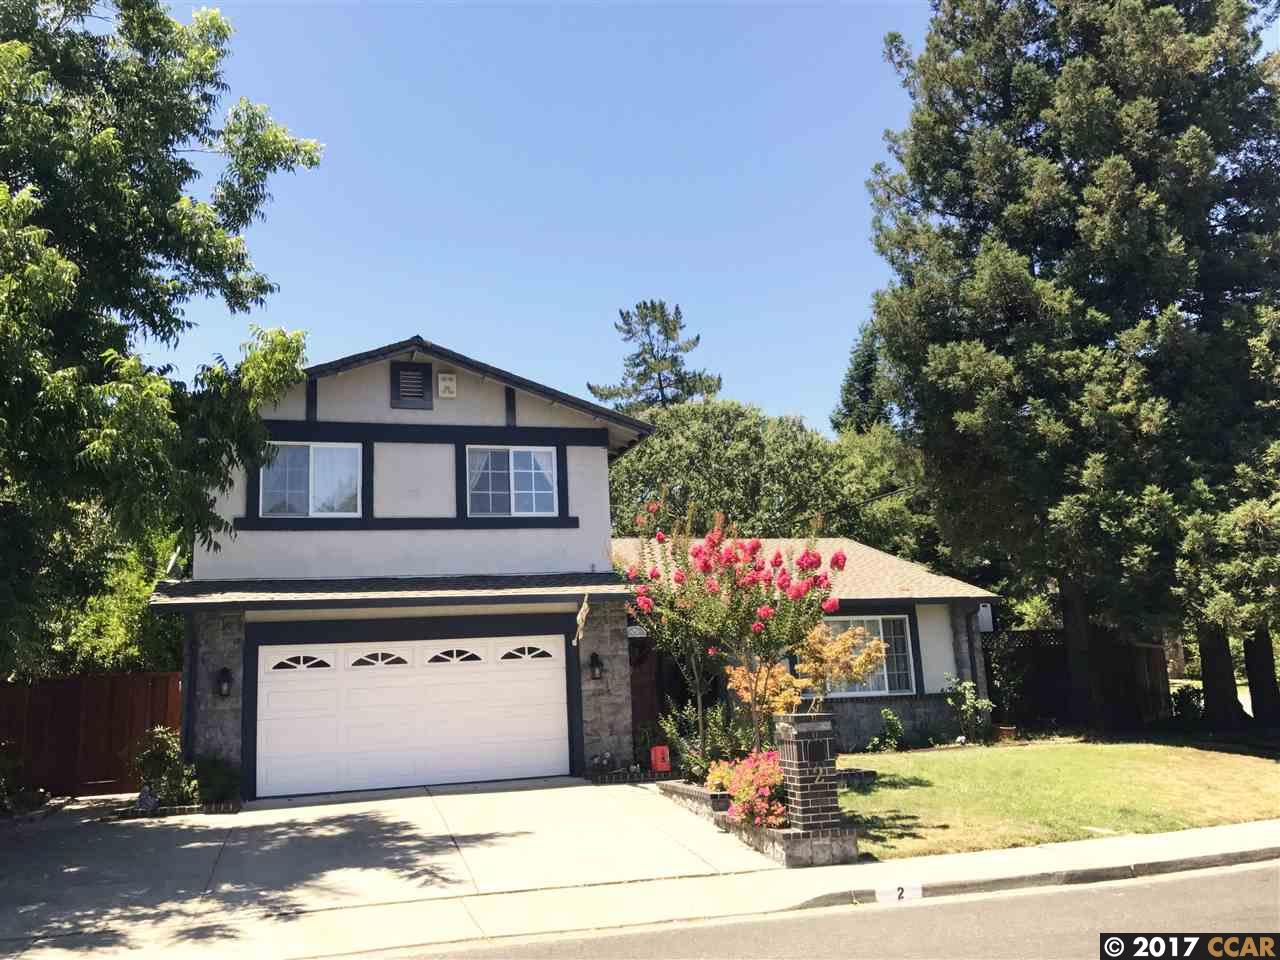 Maison unifamiliale pour l Vente à 2 Wildwood Place Pleasant Hill, Californie 94523 États-Unis